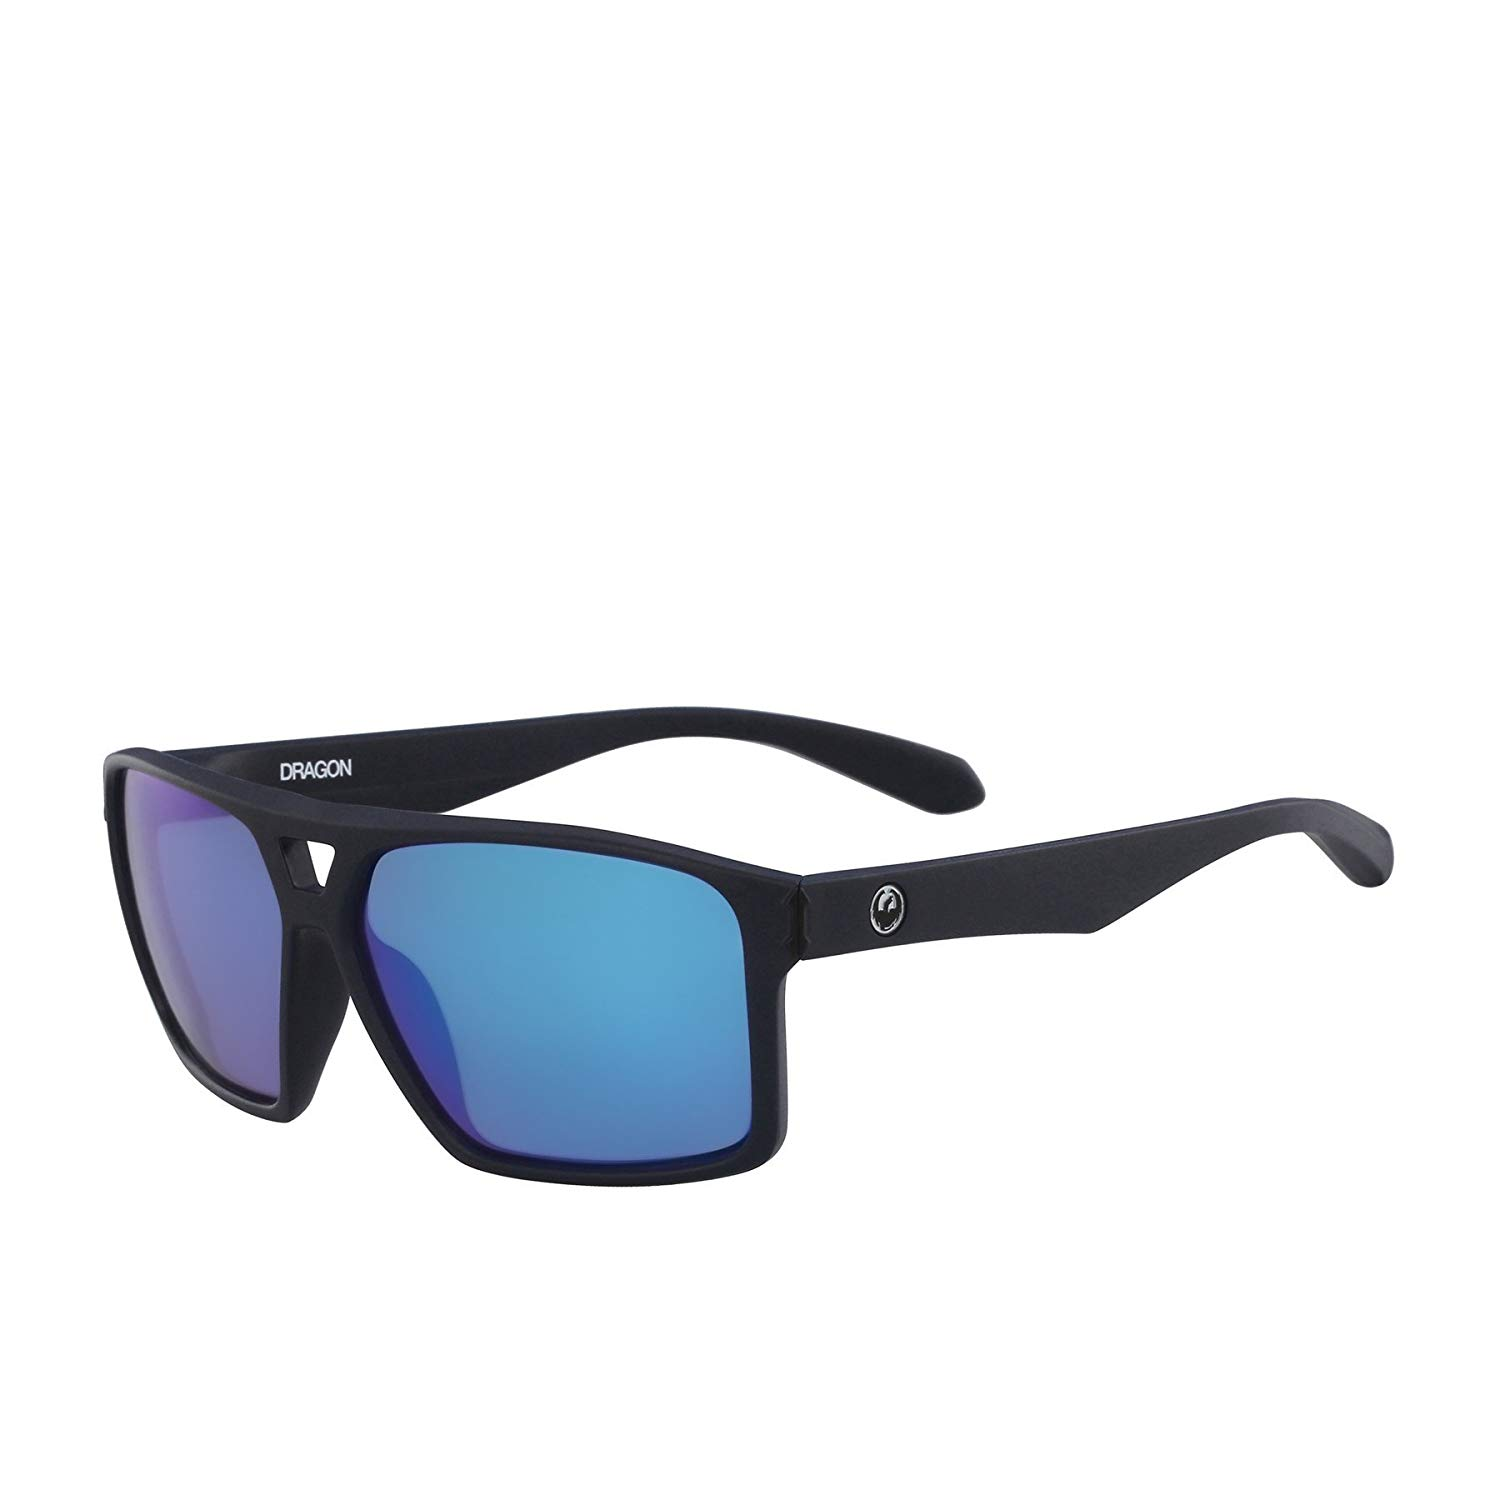 cb6cbbe8117 Get Quotations · Dragon Channel Matte Deep Navy Sunglasses One Size Blue  Ionized